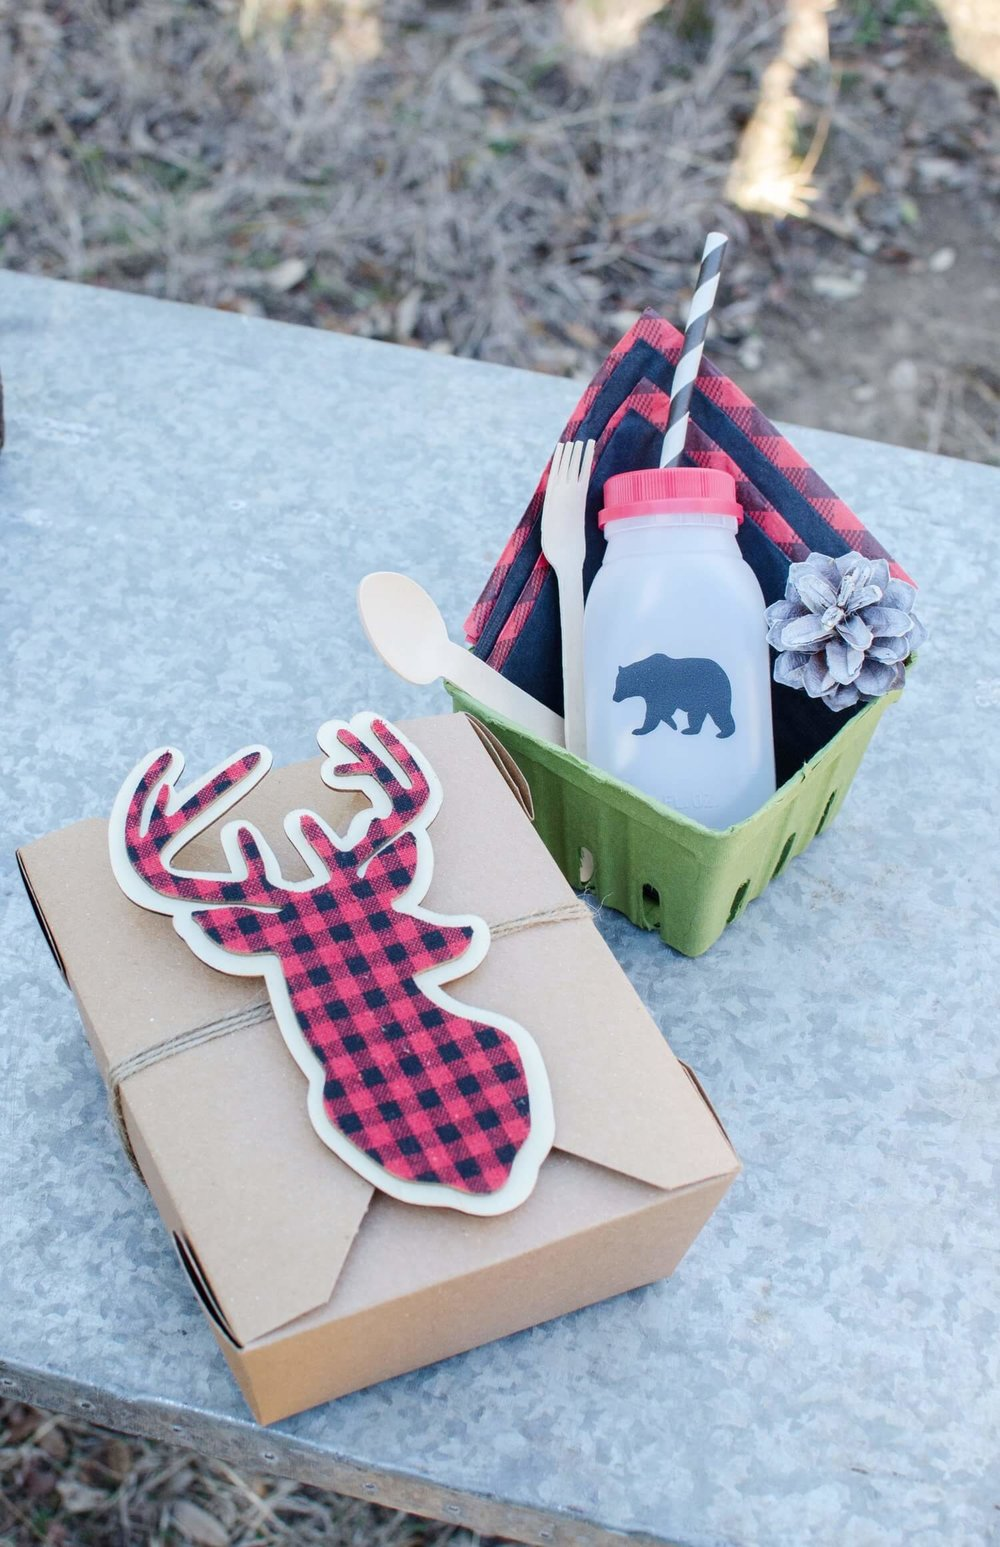 Lumberjack party ideas / lumberjack party decor / first birthday party ideas for boys / Winter Party ideas for kids / Styled by Carolina from MINT Event Design / www.minteventdesign.com